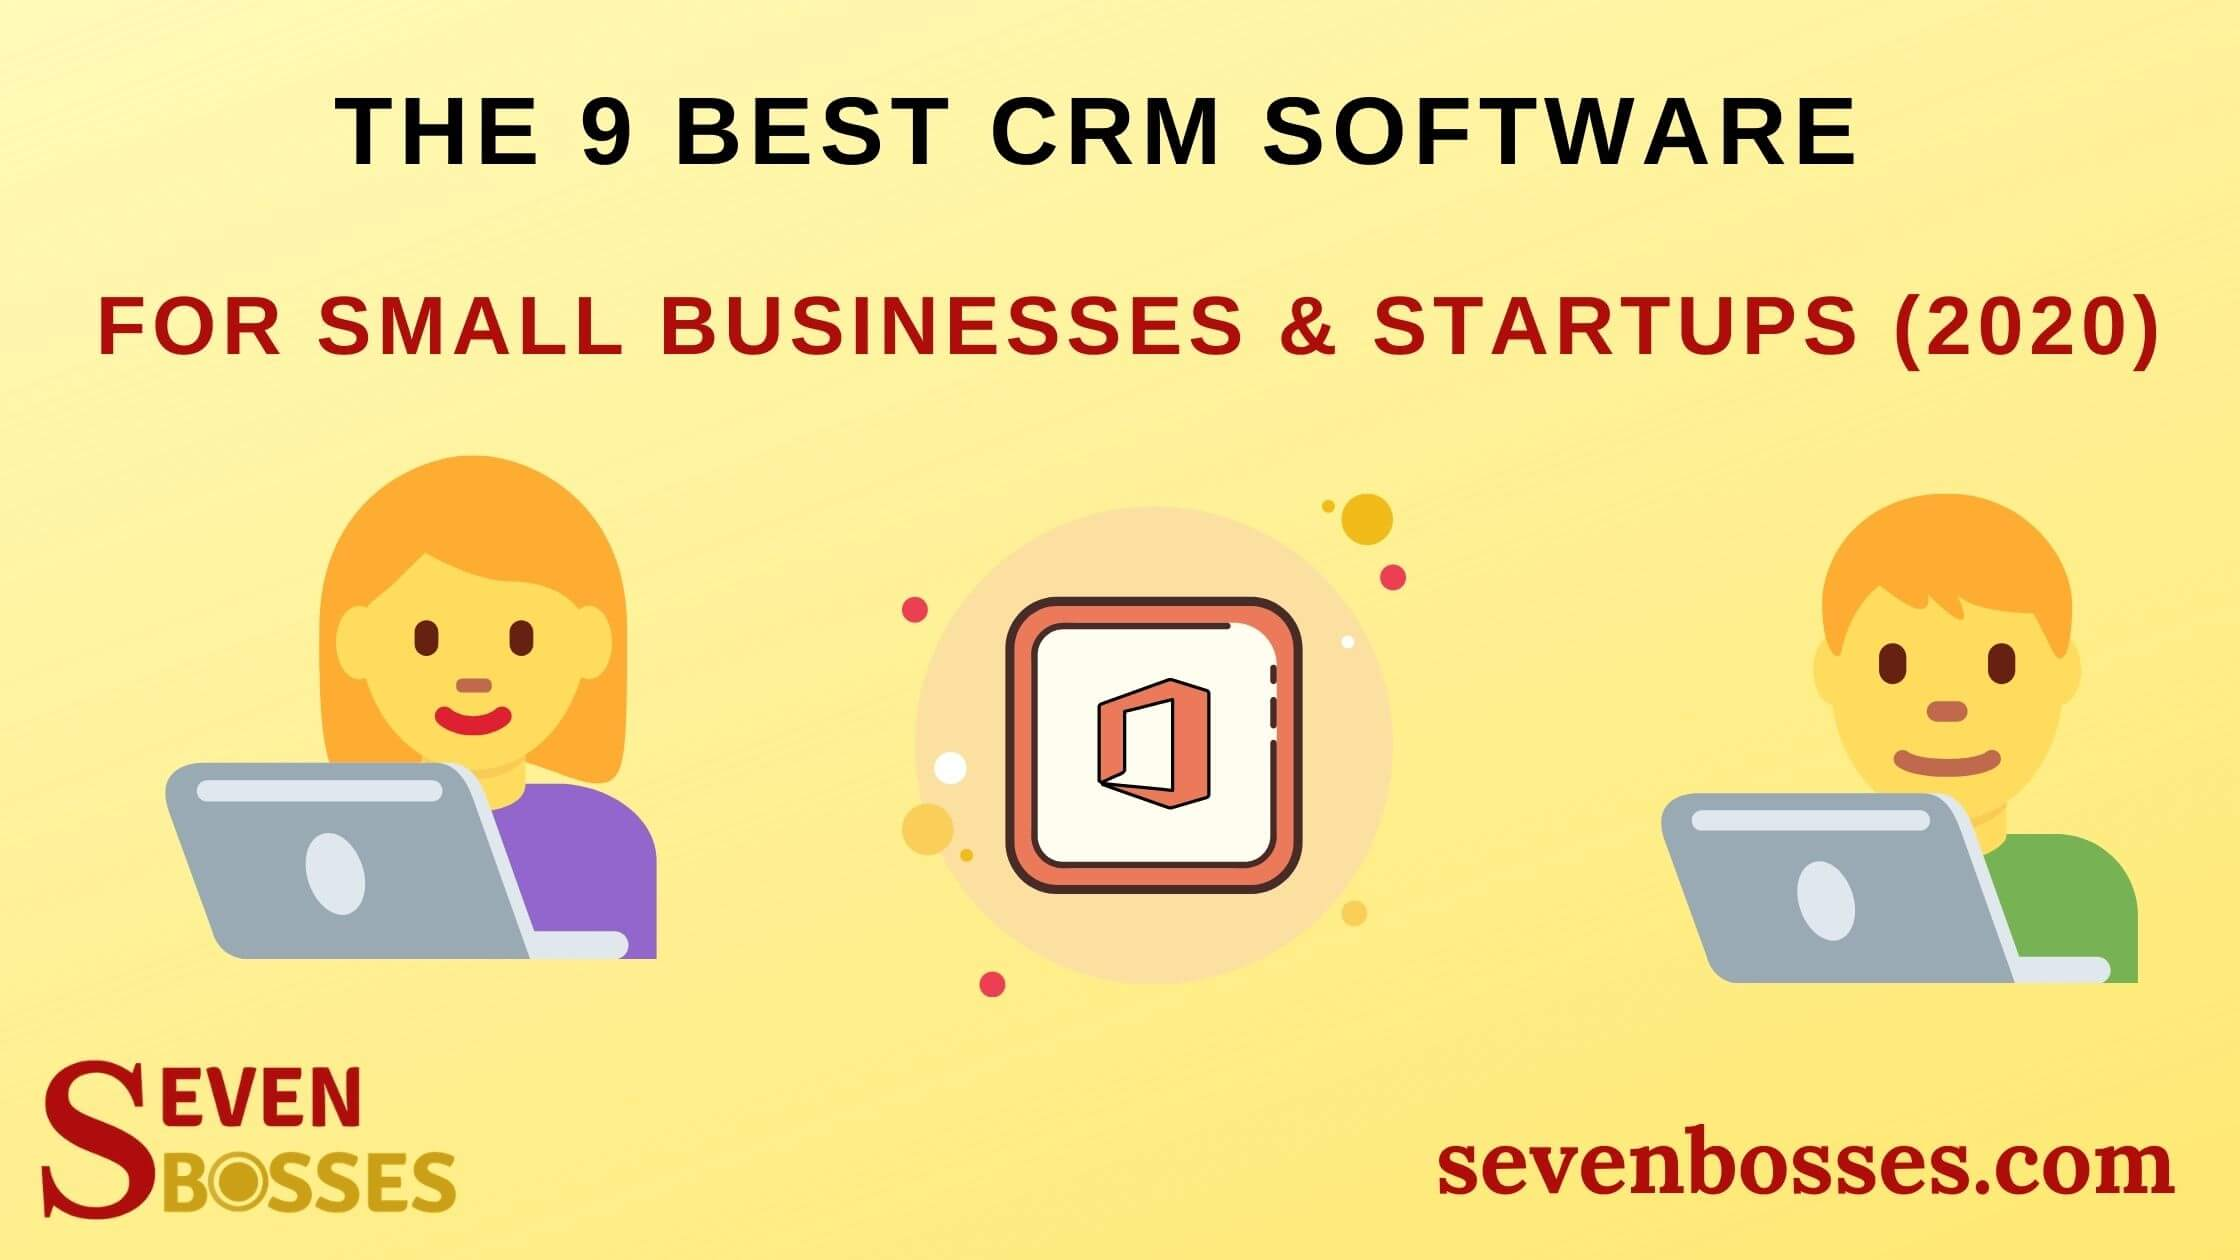 9 best CRM software for small businesses and startups